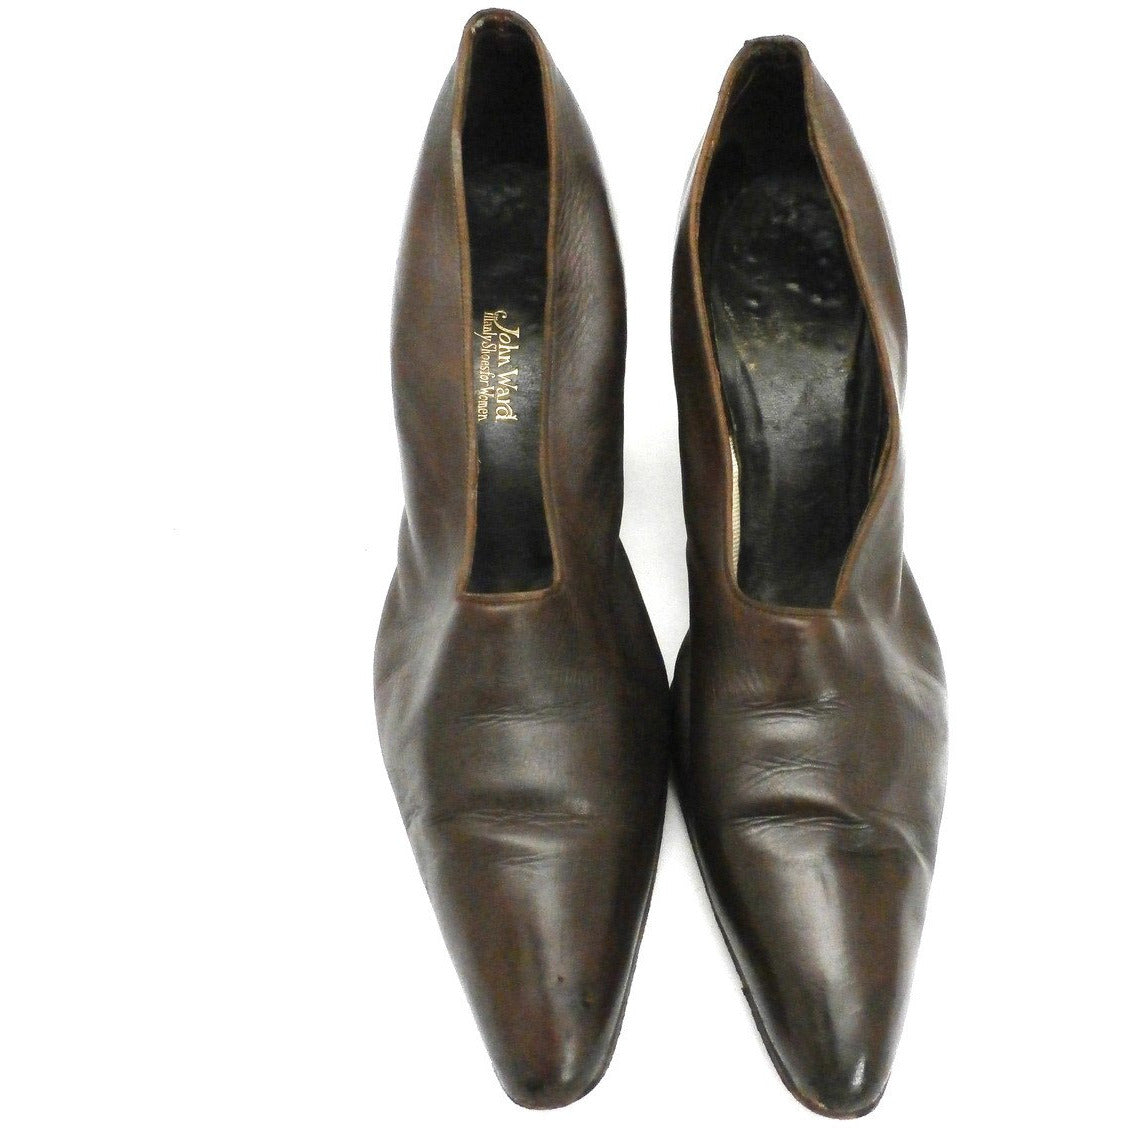 Vintage Ladies Shoes Pumps Brown Leather Late Teens-Early 1920s Size 6B John Ward - The Best Vintage Clothing  - 1